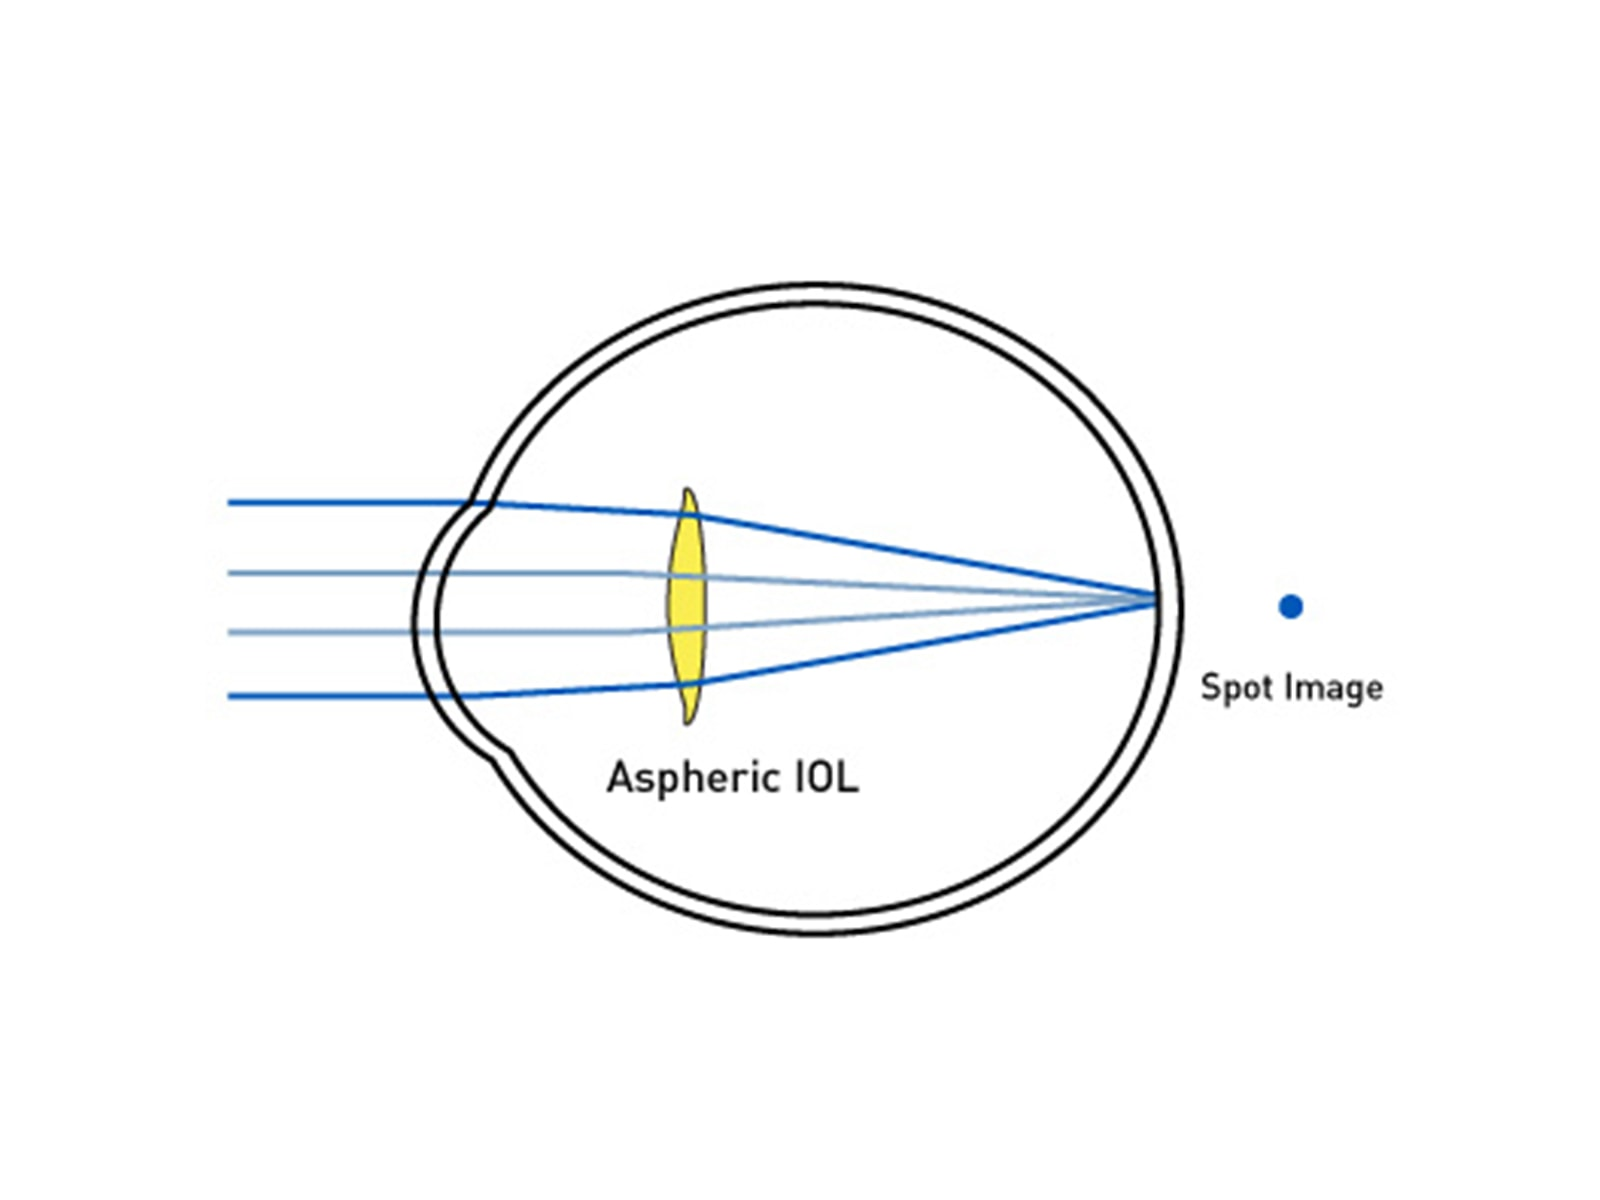 Optimized Aspheric IOL ABC Design